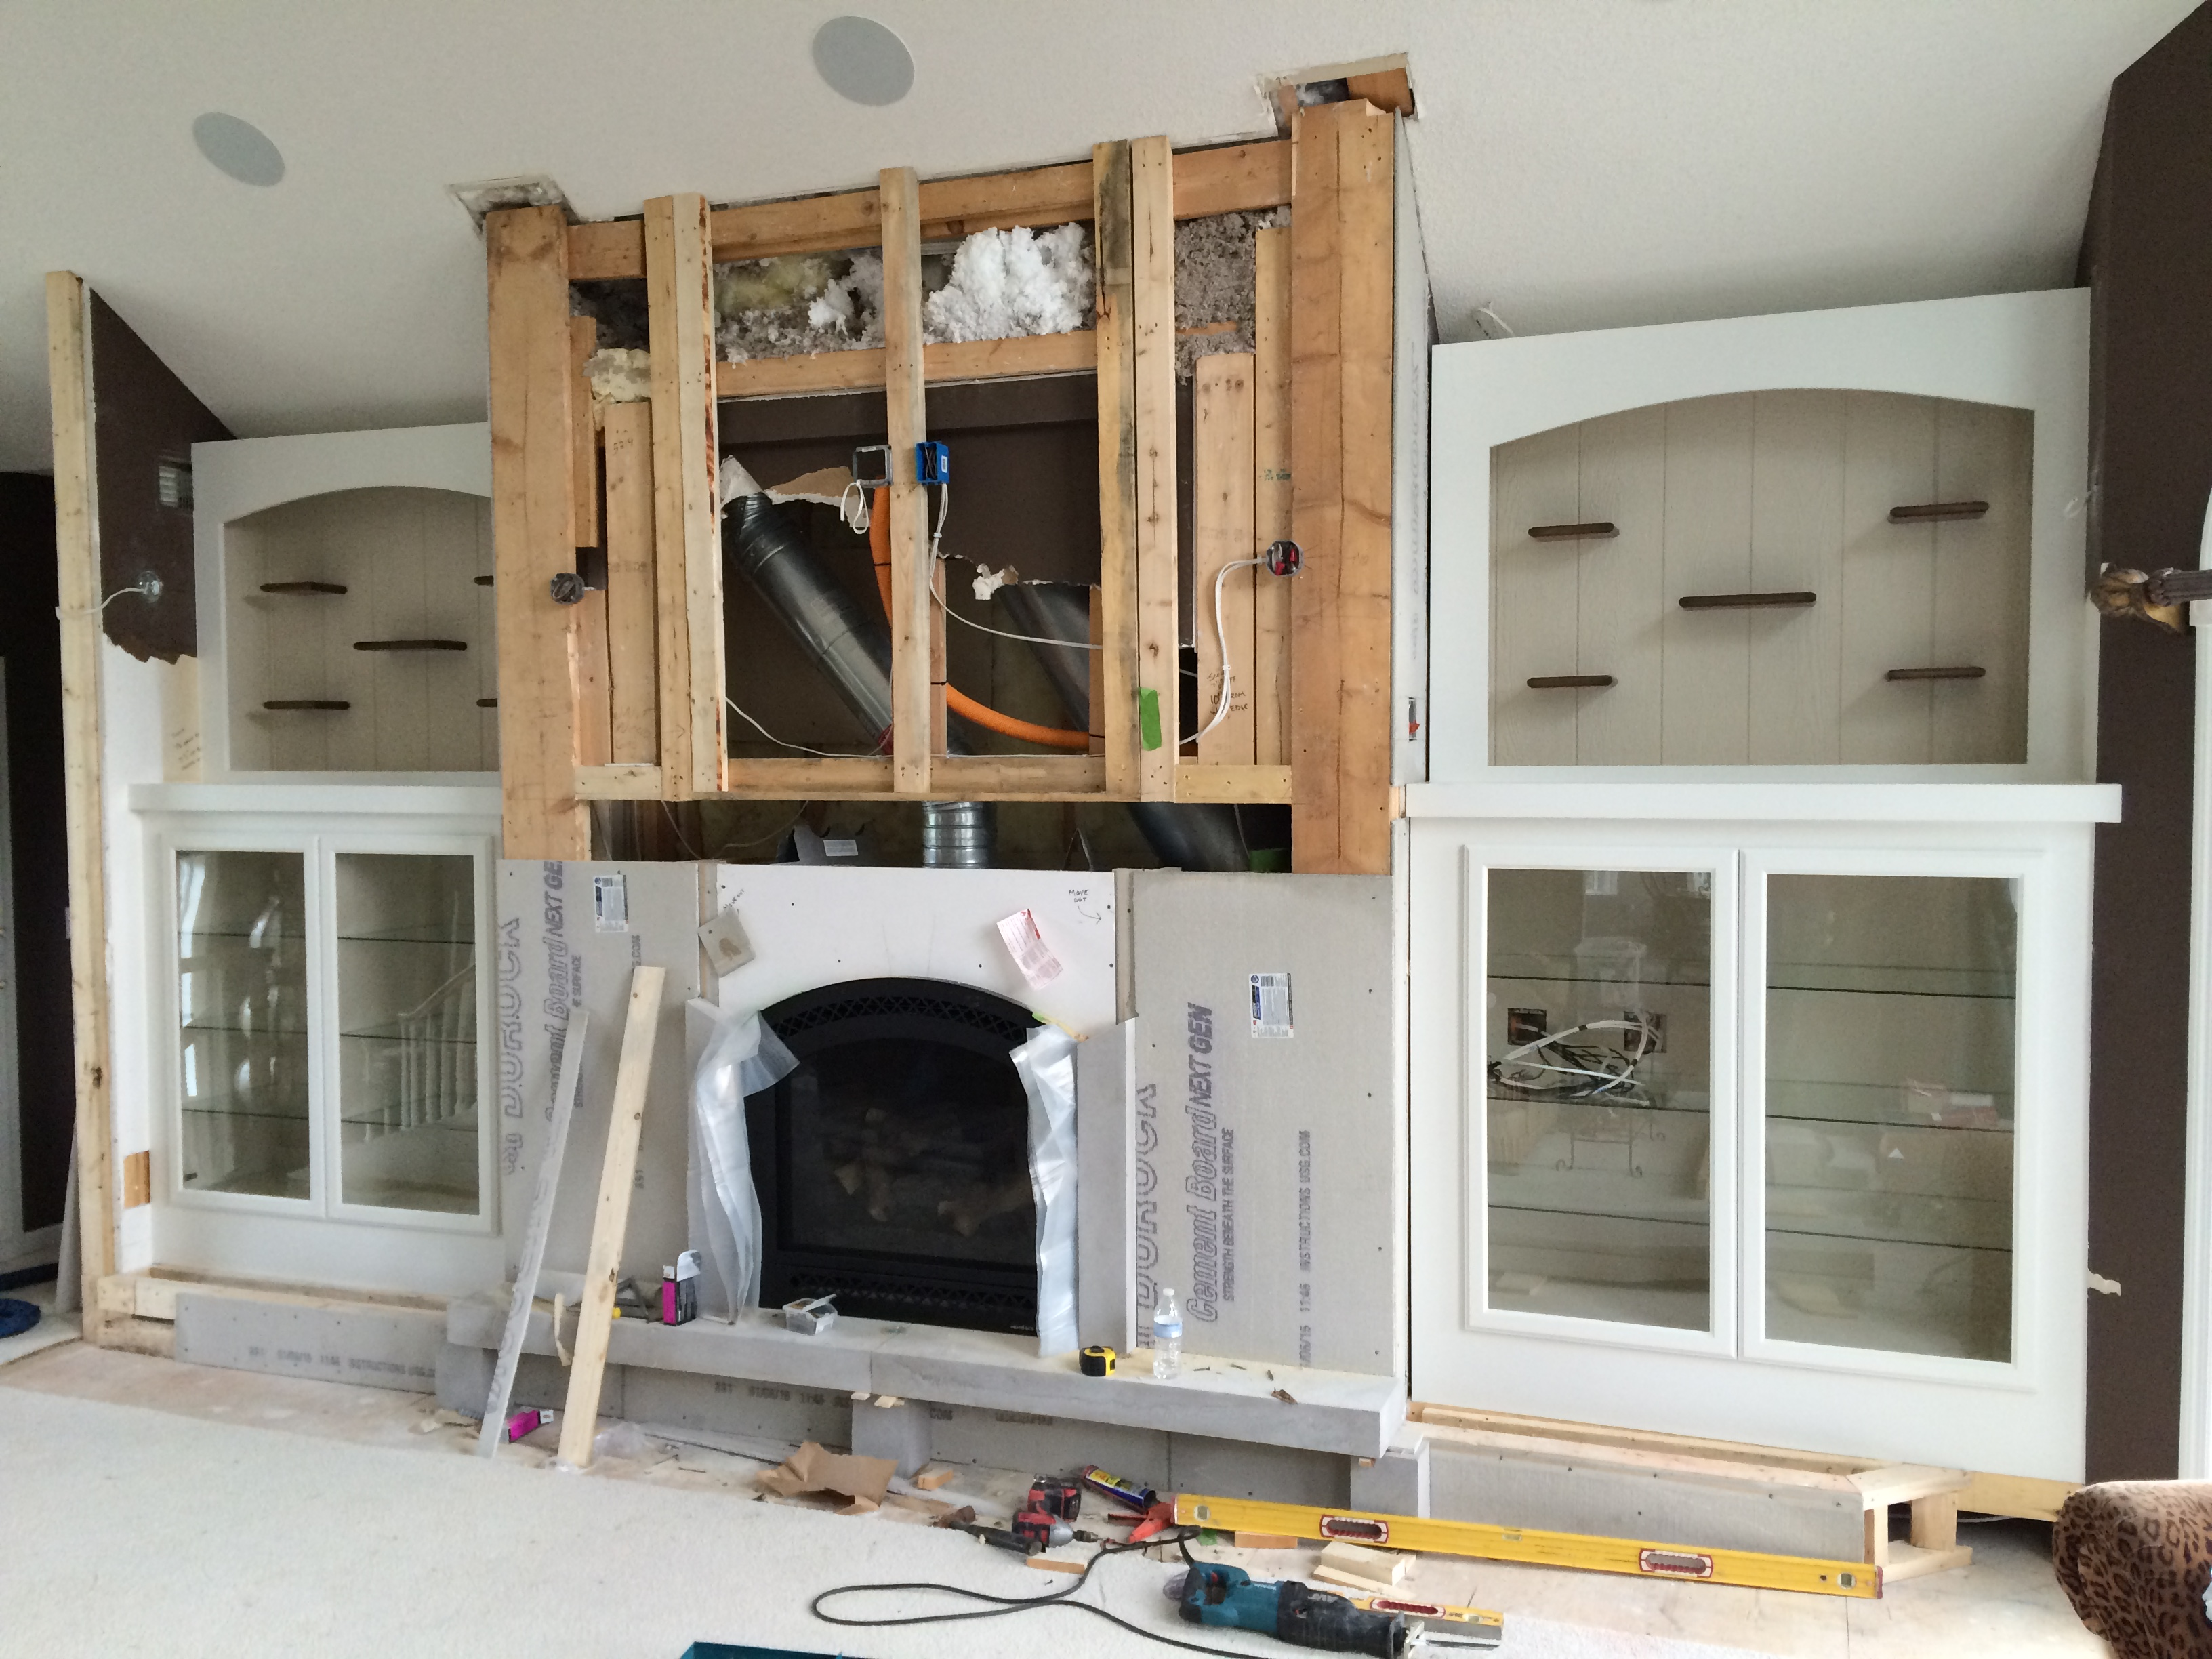 Custom Fireplace Cabinetry Built Ins Floating Shelves Stillwater MN